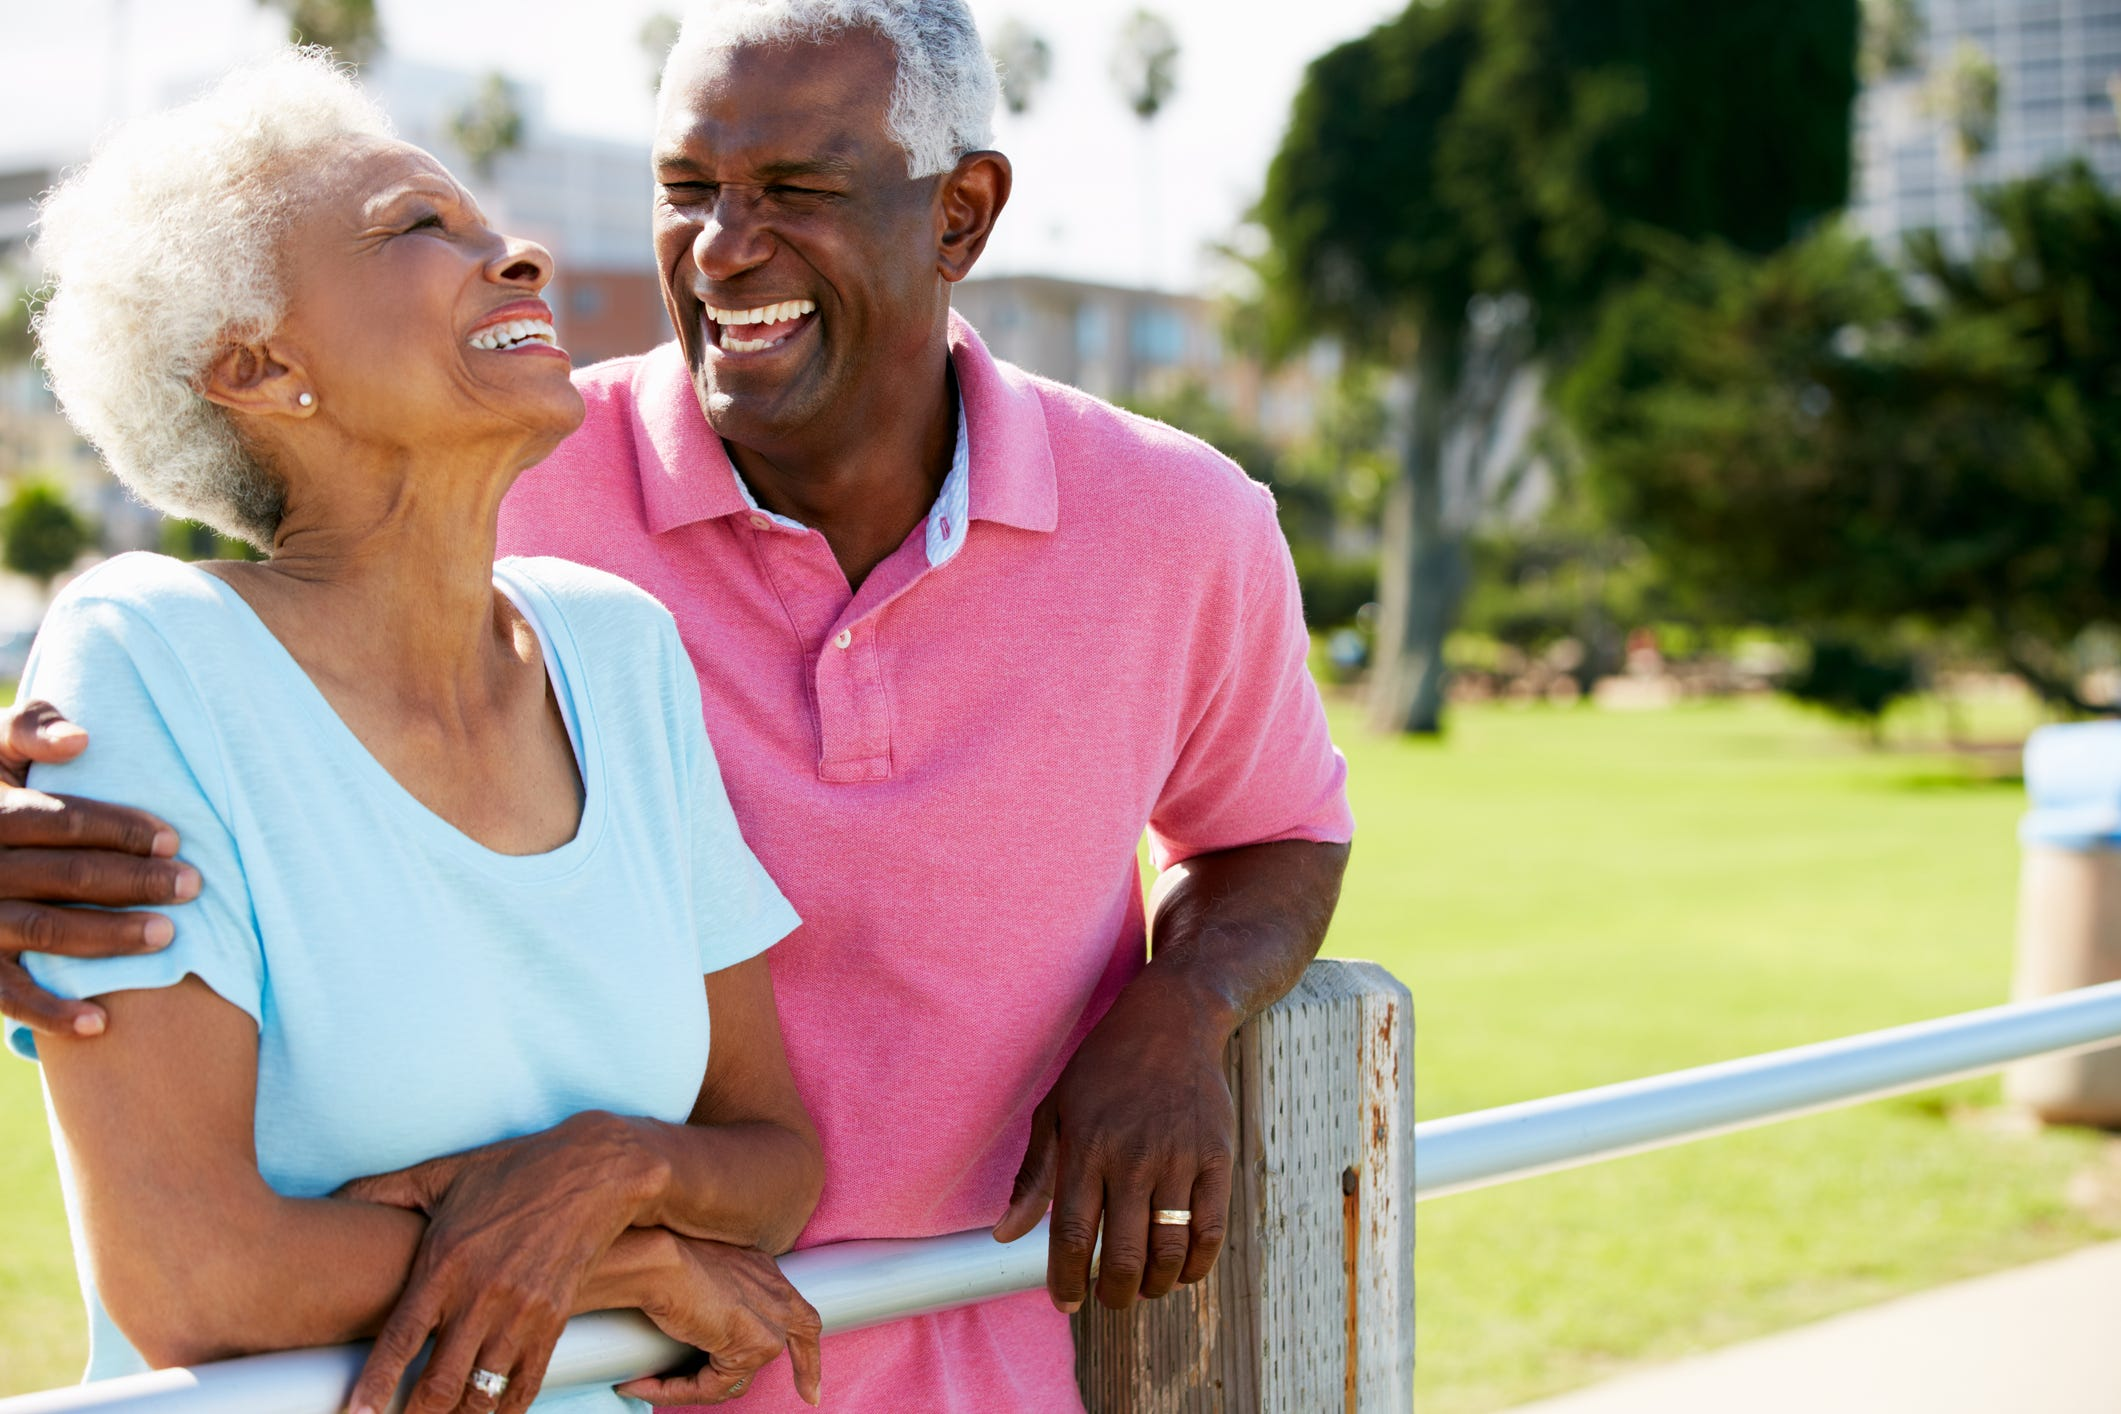 Sexually active older adults